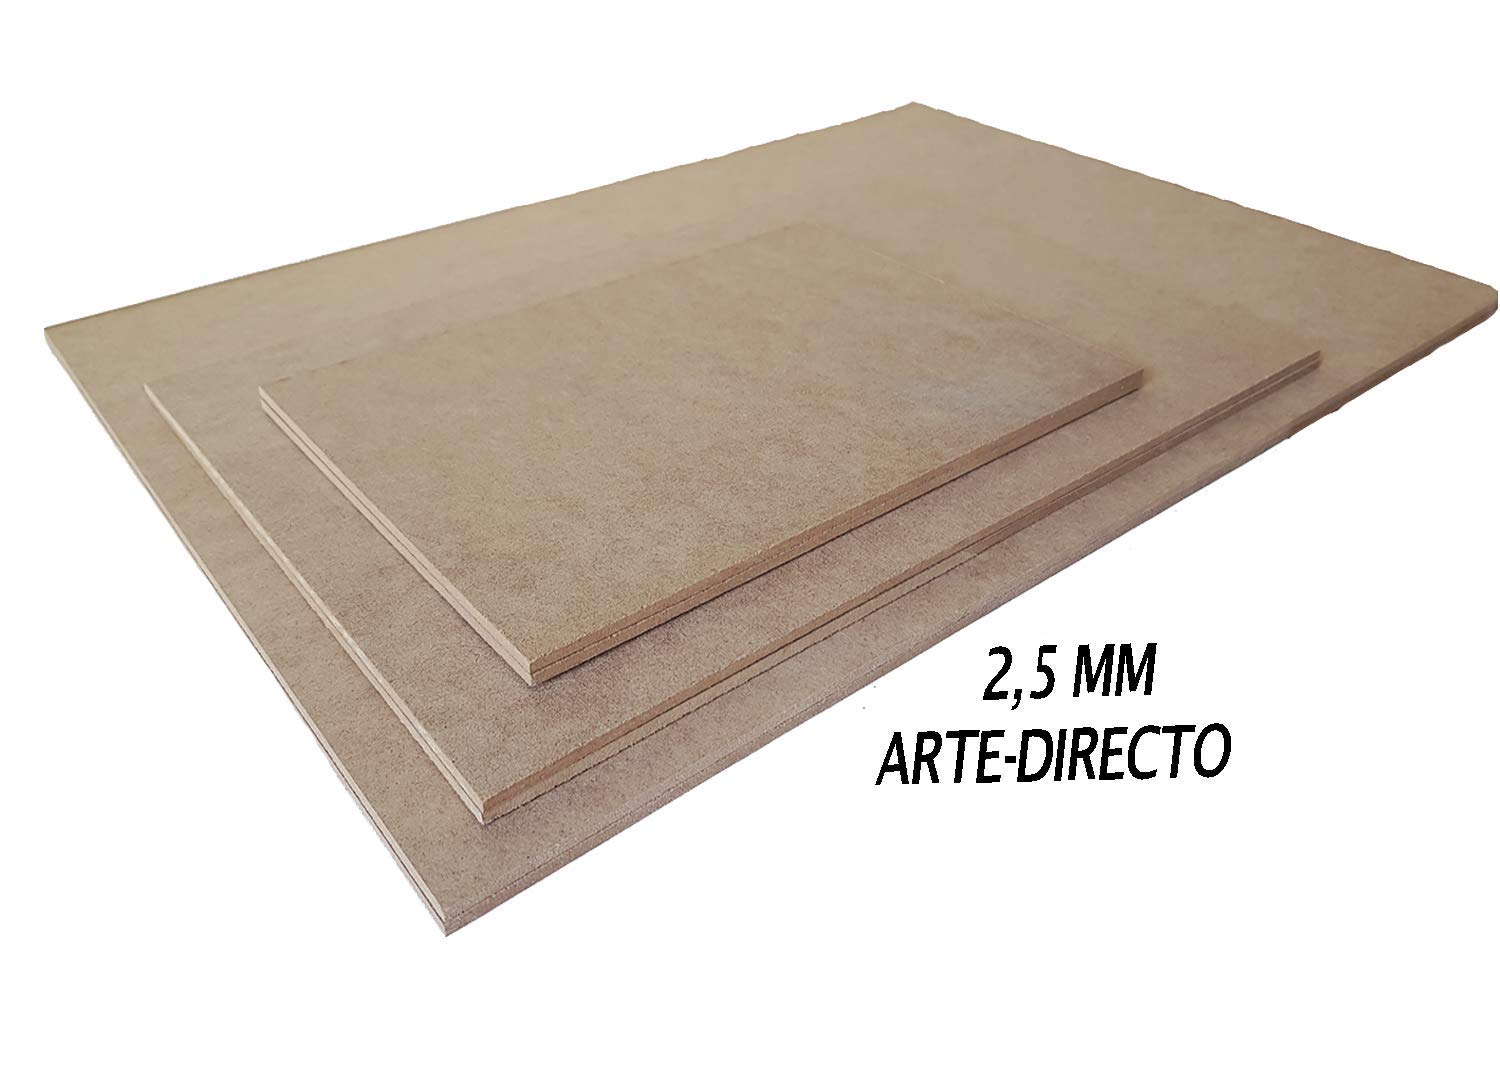 A3 to Choose from A3 DIY Craft Stand Laser Decoration CNC Drawing DIY Painting Tableros de Madera DM 5 piezas A5 A4 5MM MDF Wood Boards Available Sizes A0 A2 A1